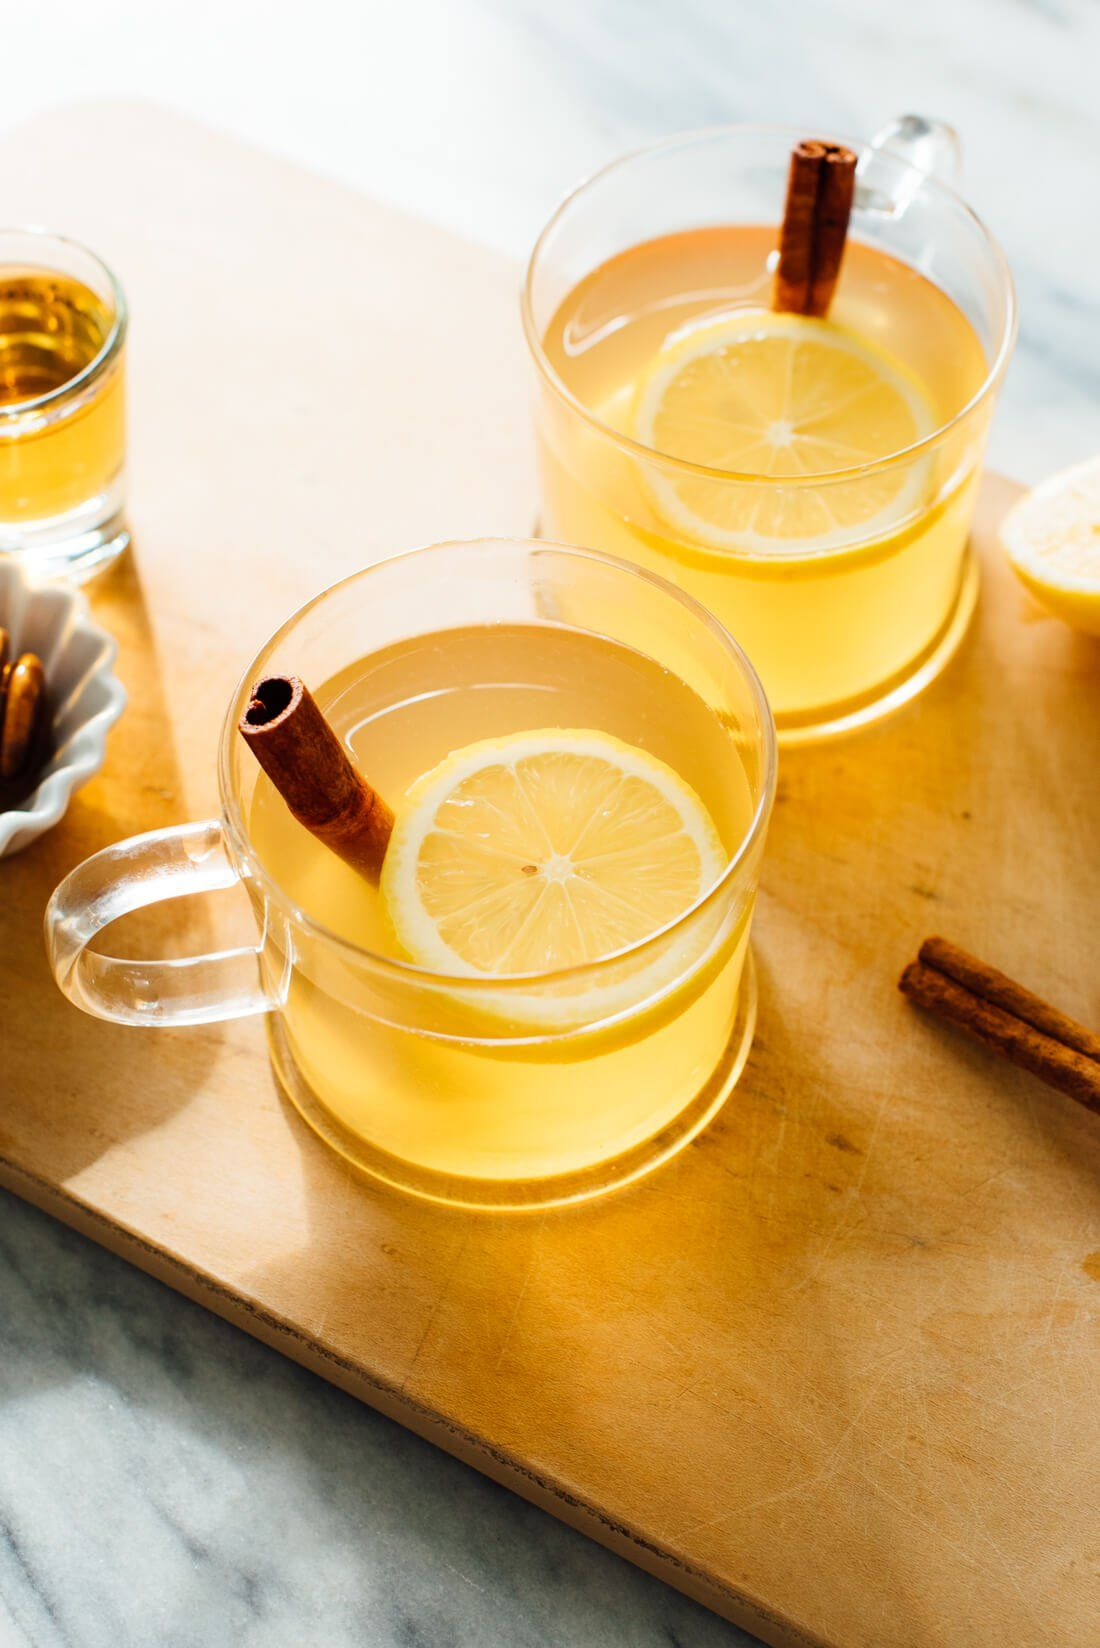 Warm up with this classic hot toddy cocktail recipe! Hot toddies are so easy to make. You'll just need hot water, whiskey, honey, and lemon. Cheers! #cocktail #christmasrecipe #whiskey #cookieandkate